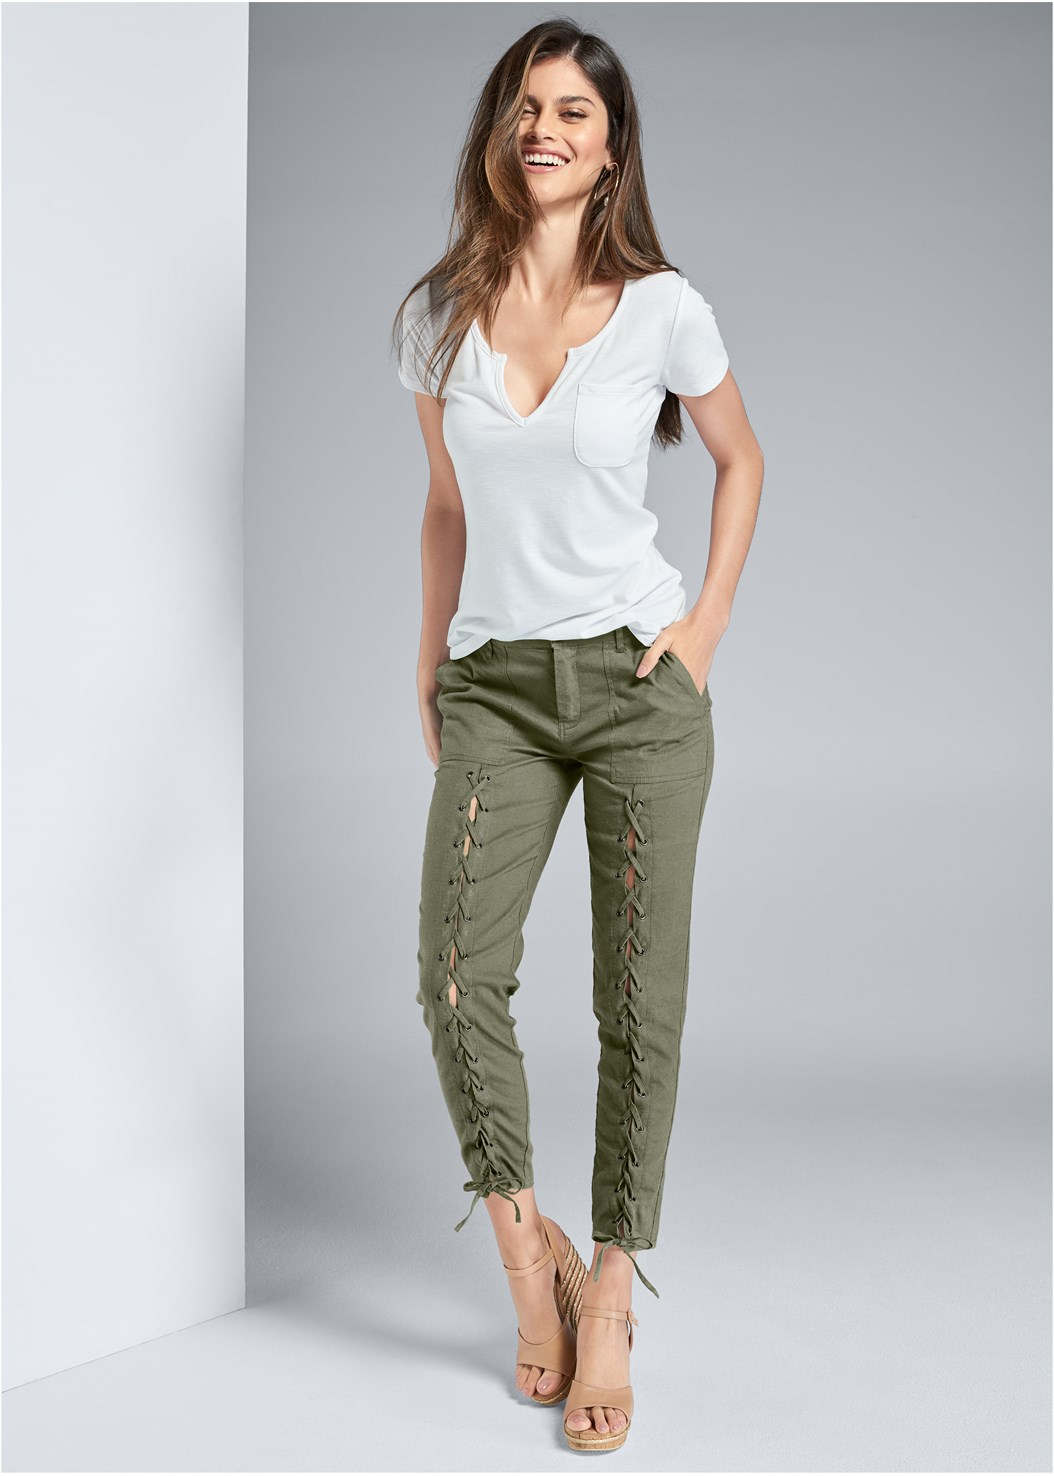 Lace Up Linen Pants,Casual Pocket Tee,Push Up Bra Buy 2 For $40,Studded Animal Print Sandal,Studded Belt Bag